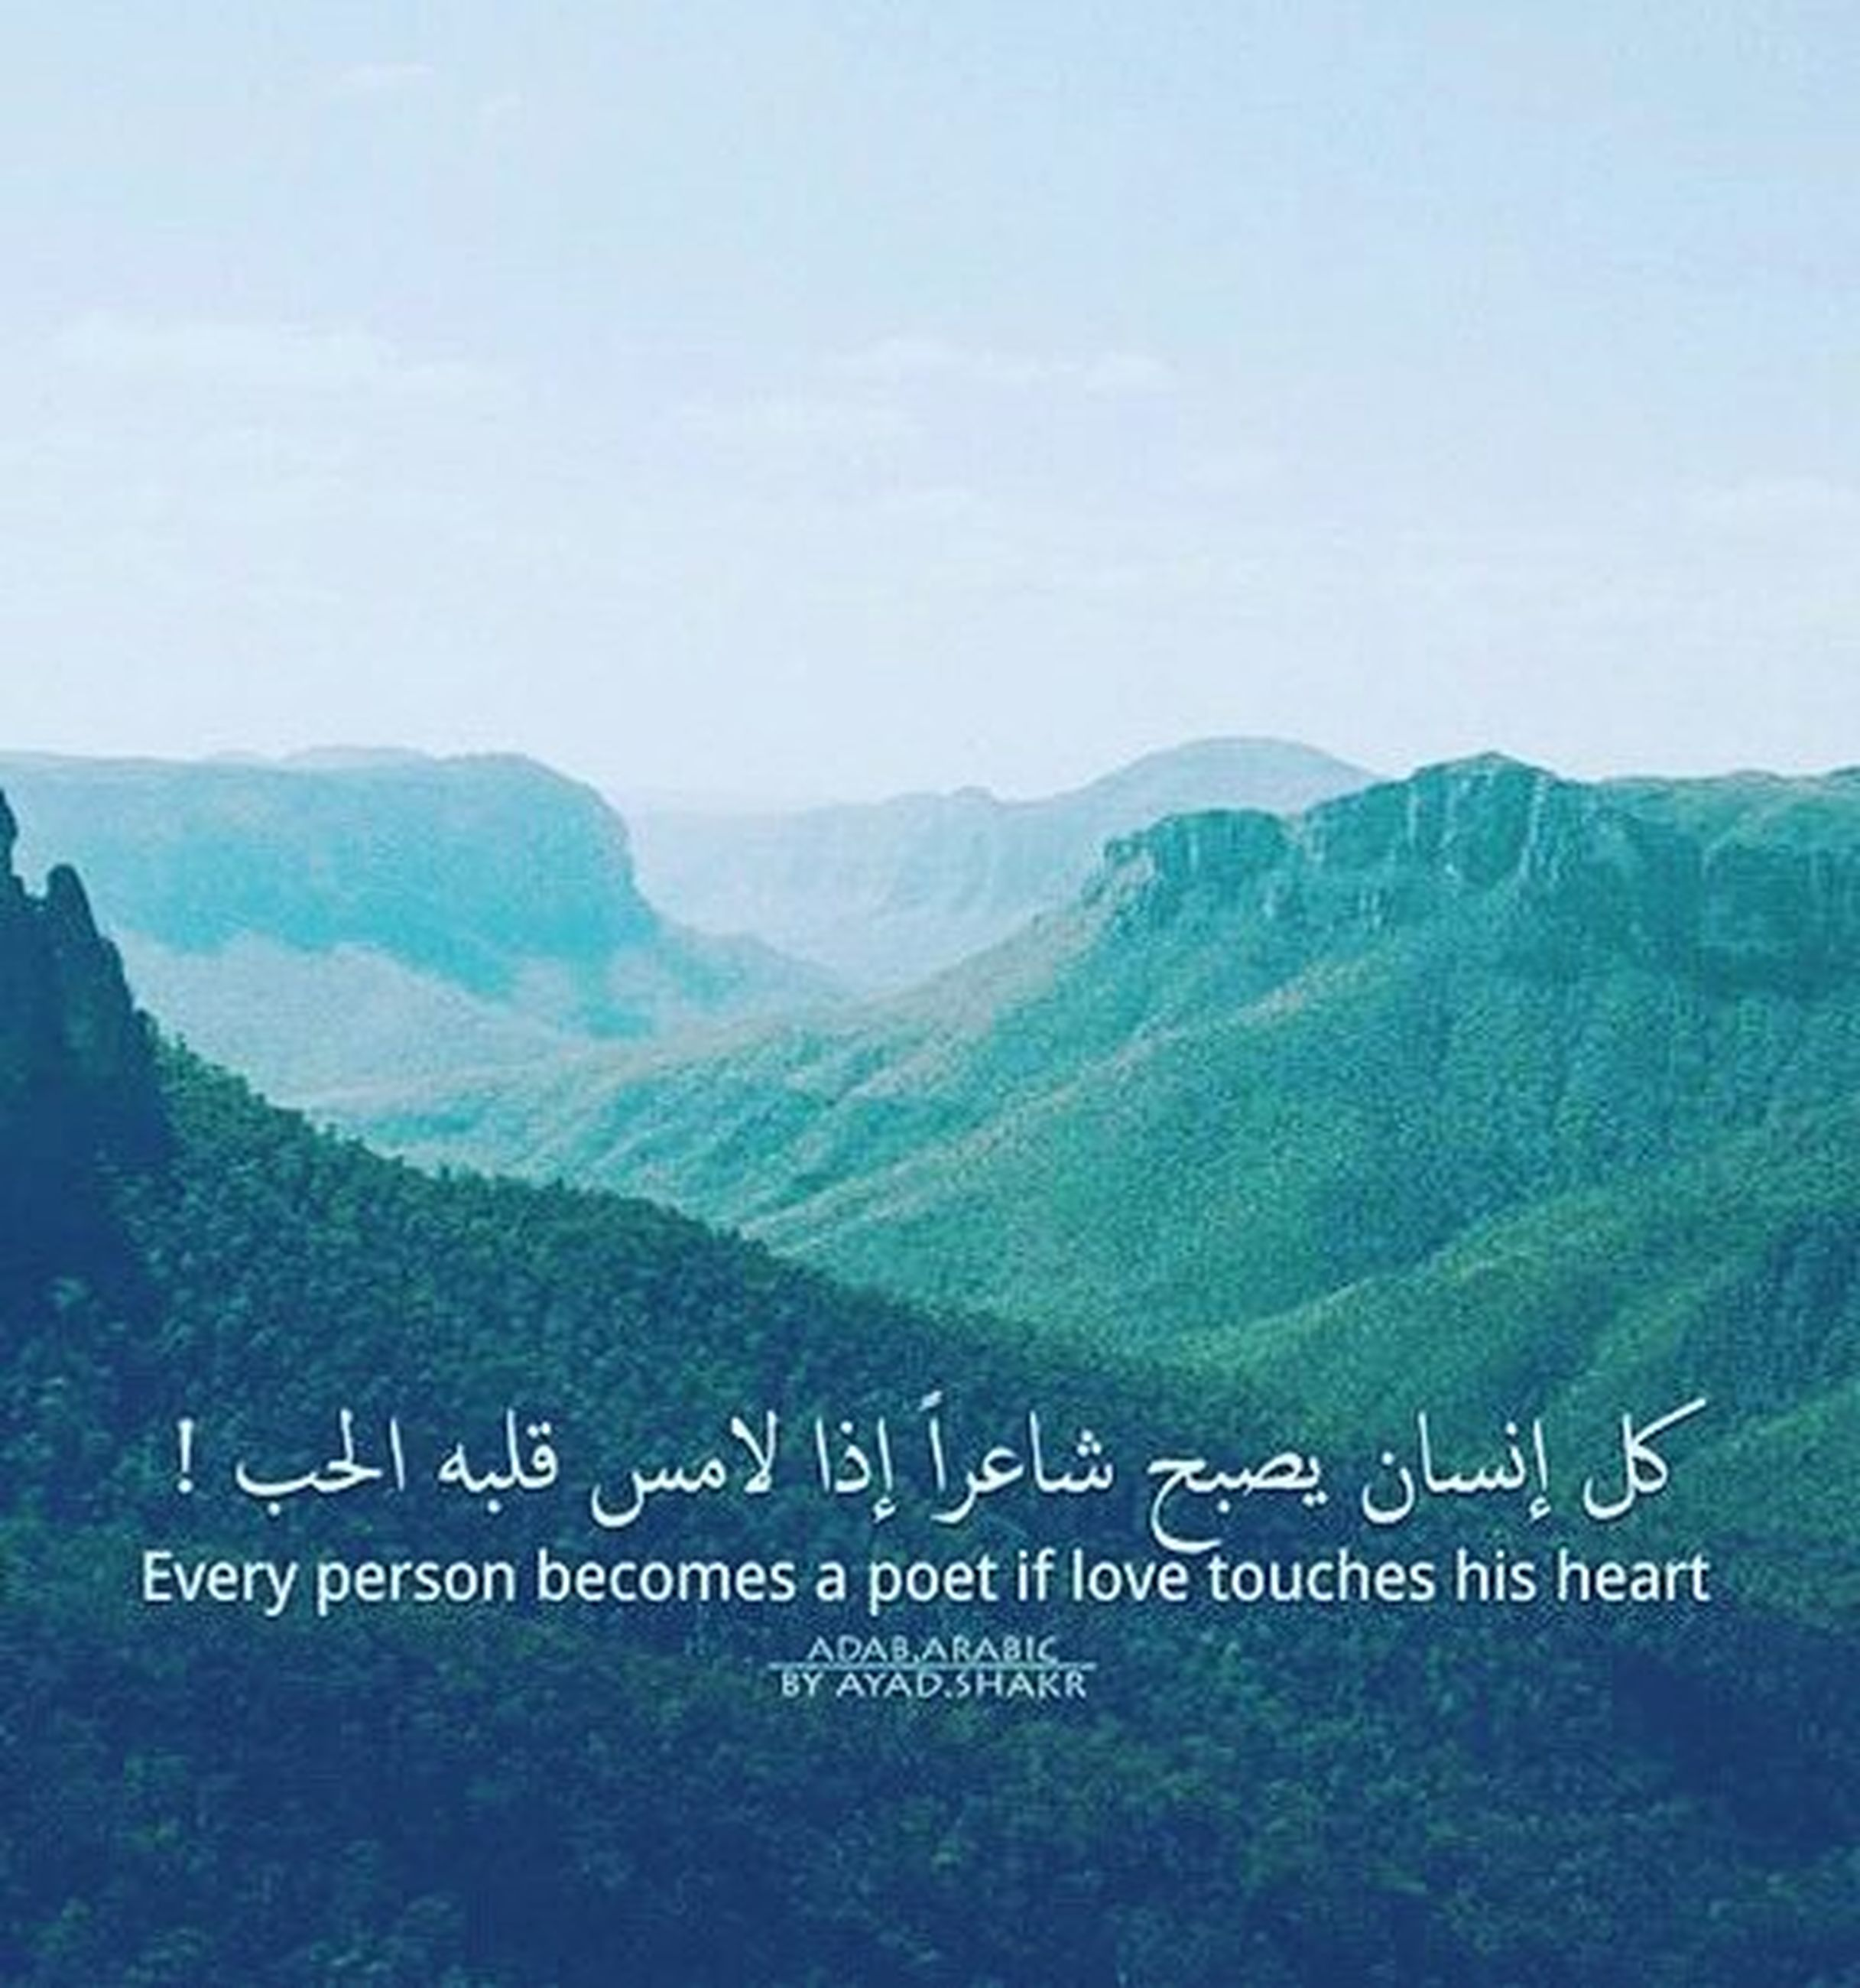 mountain, mountain range, tranquil scene, scenics, tranquility, landscape, beauty in nature, nature, text, non-urban scene, sky, communication, western script, remote, idyllic, day, no people, clear sky, outdoors, hill